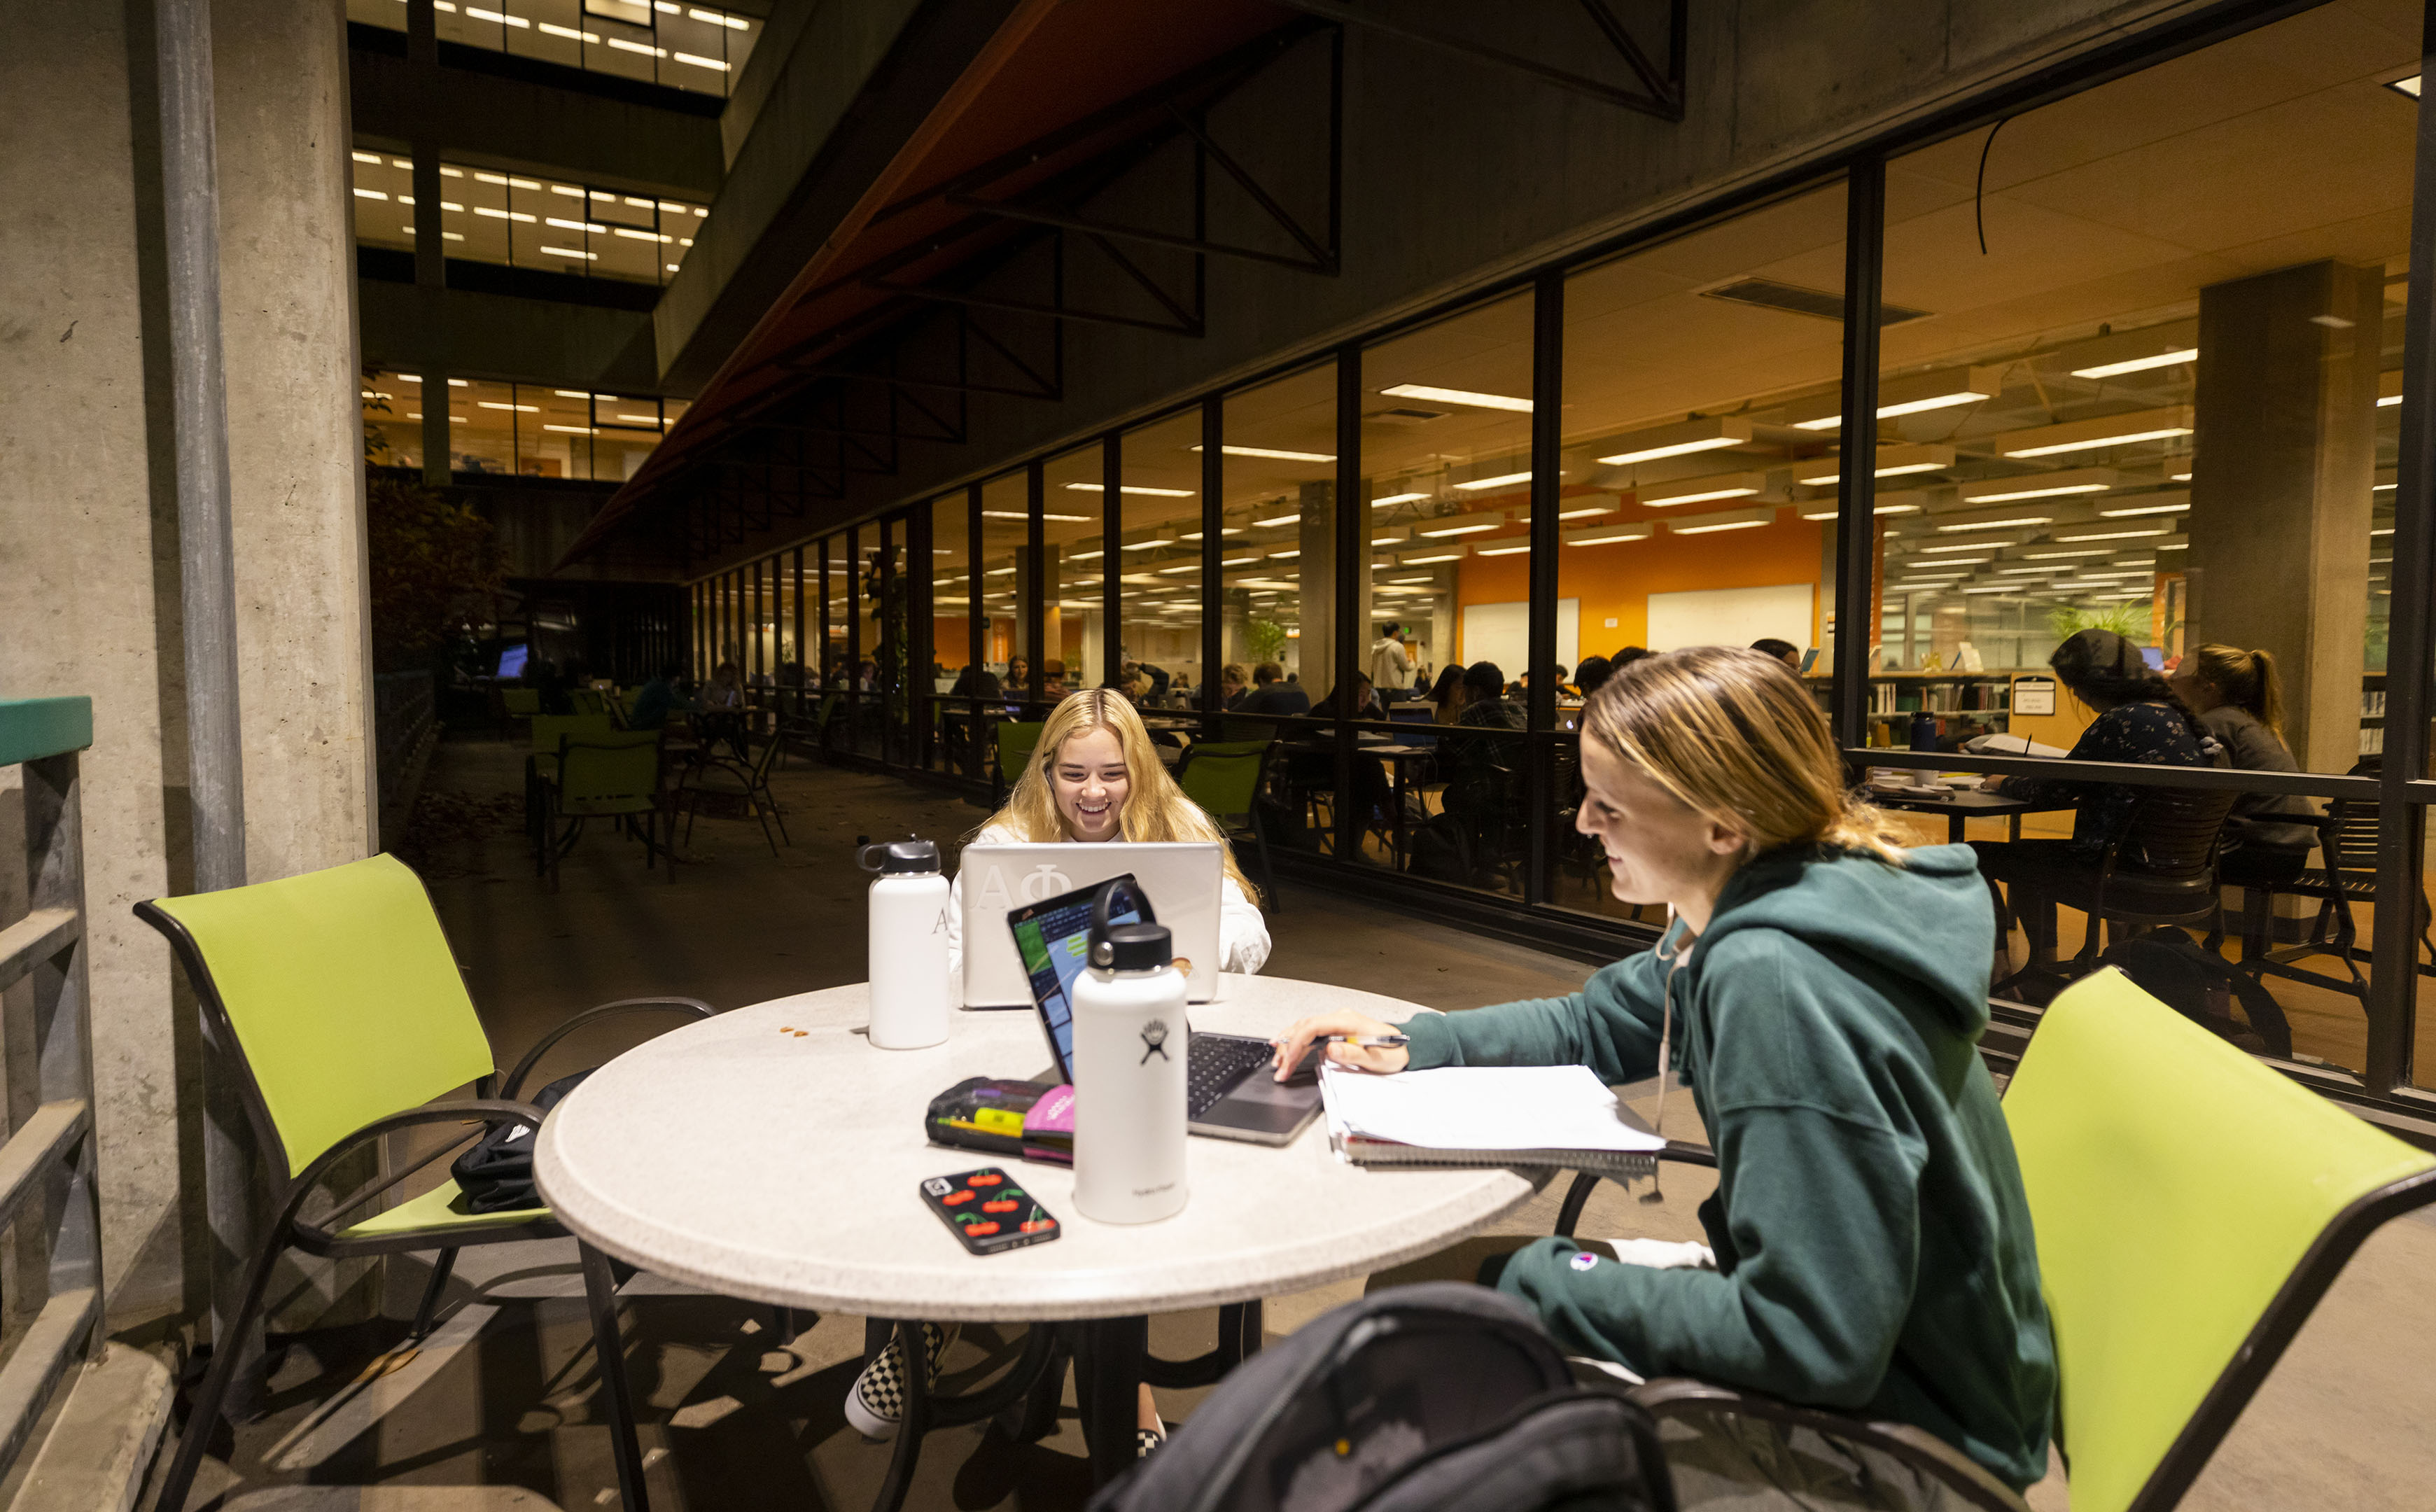 Two female students sit at a table with notes, waterbottles and laptops in Kennedy Library's atrium